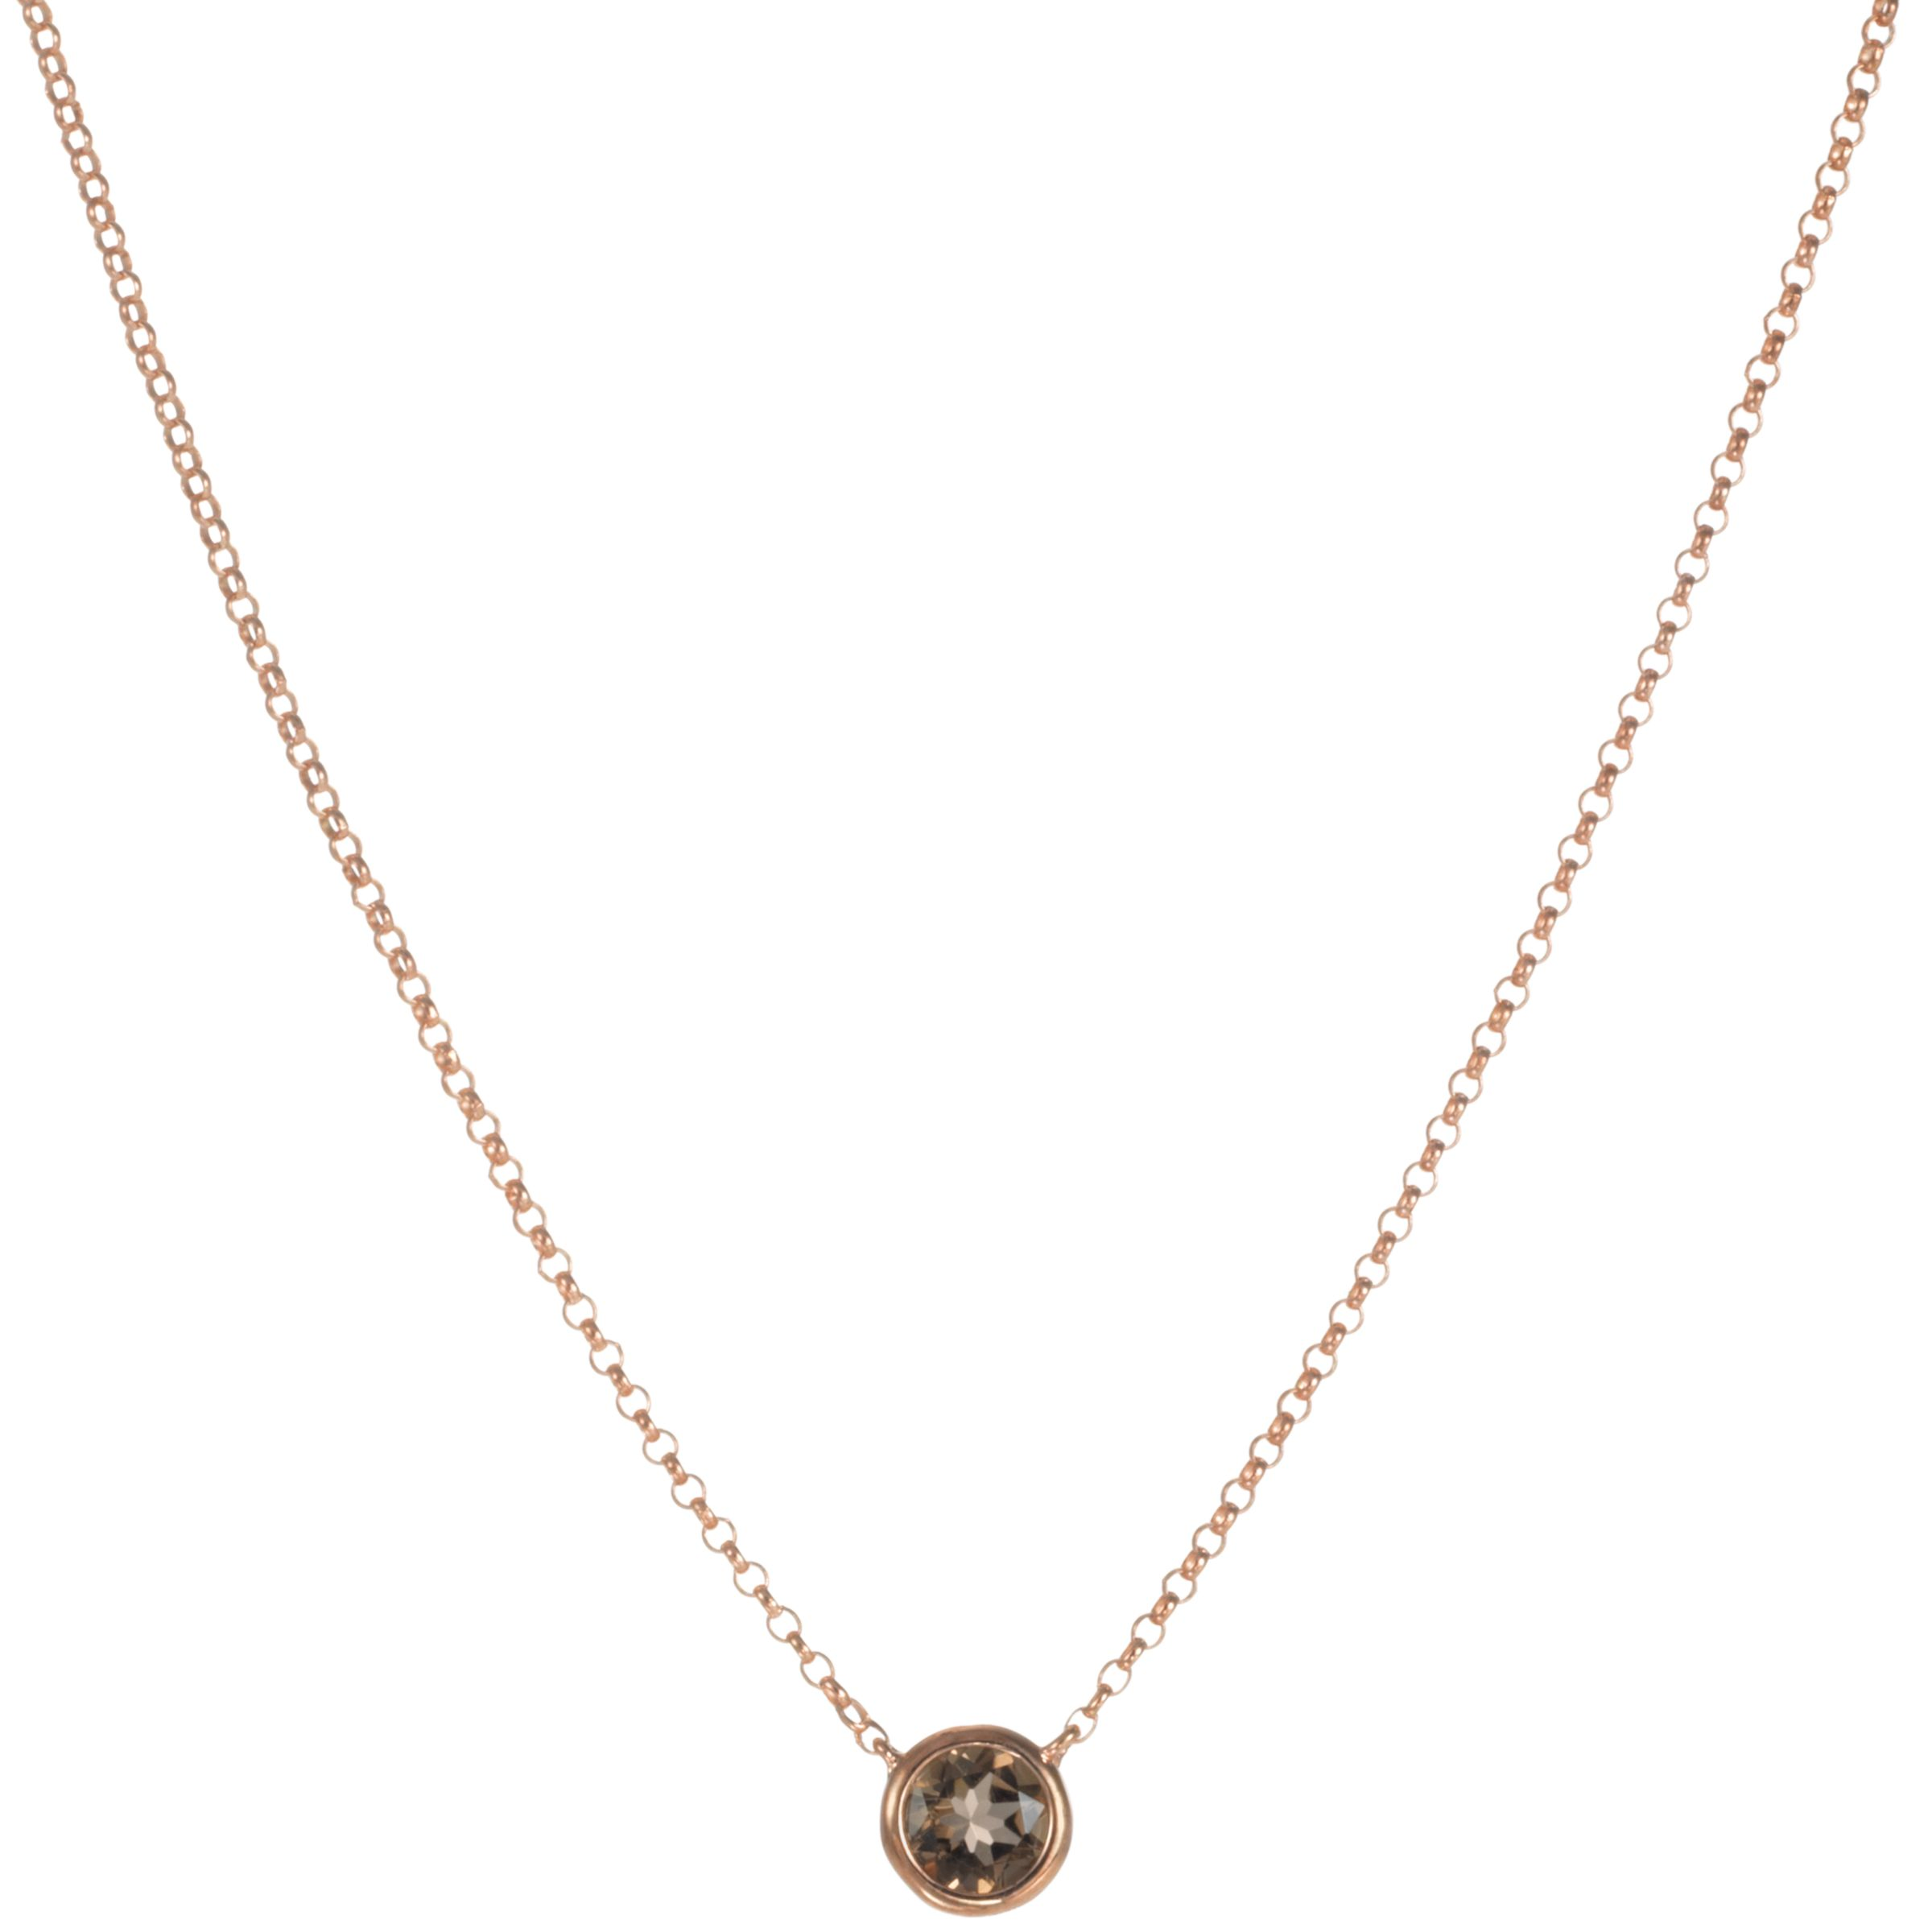 London Road 9ct Rose Gold Rain Drop Smokey Quartz Pendant Necklace